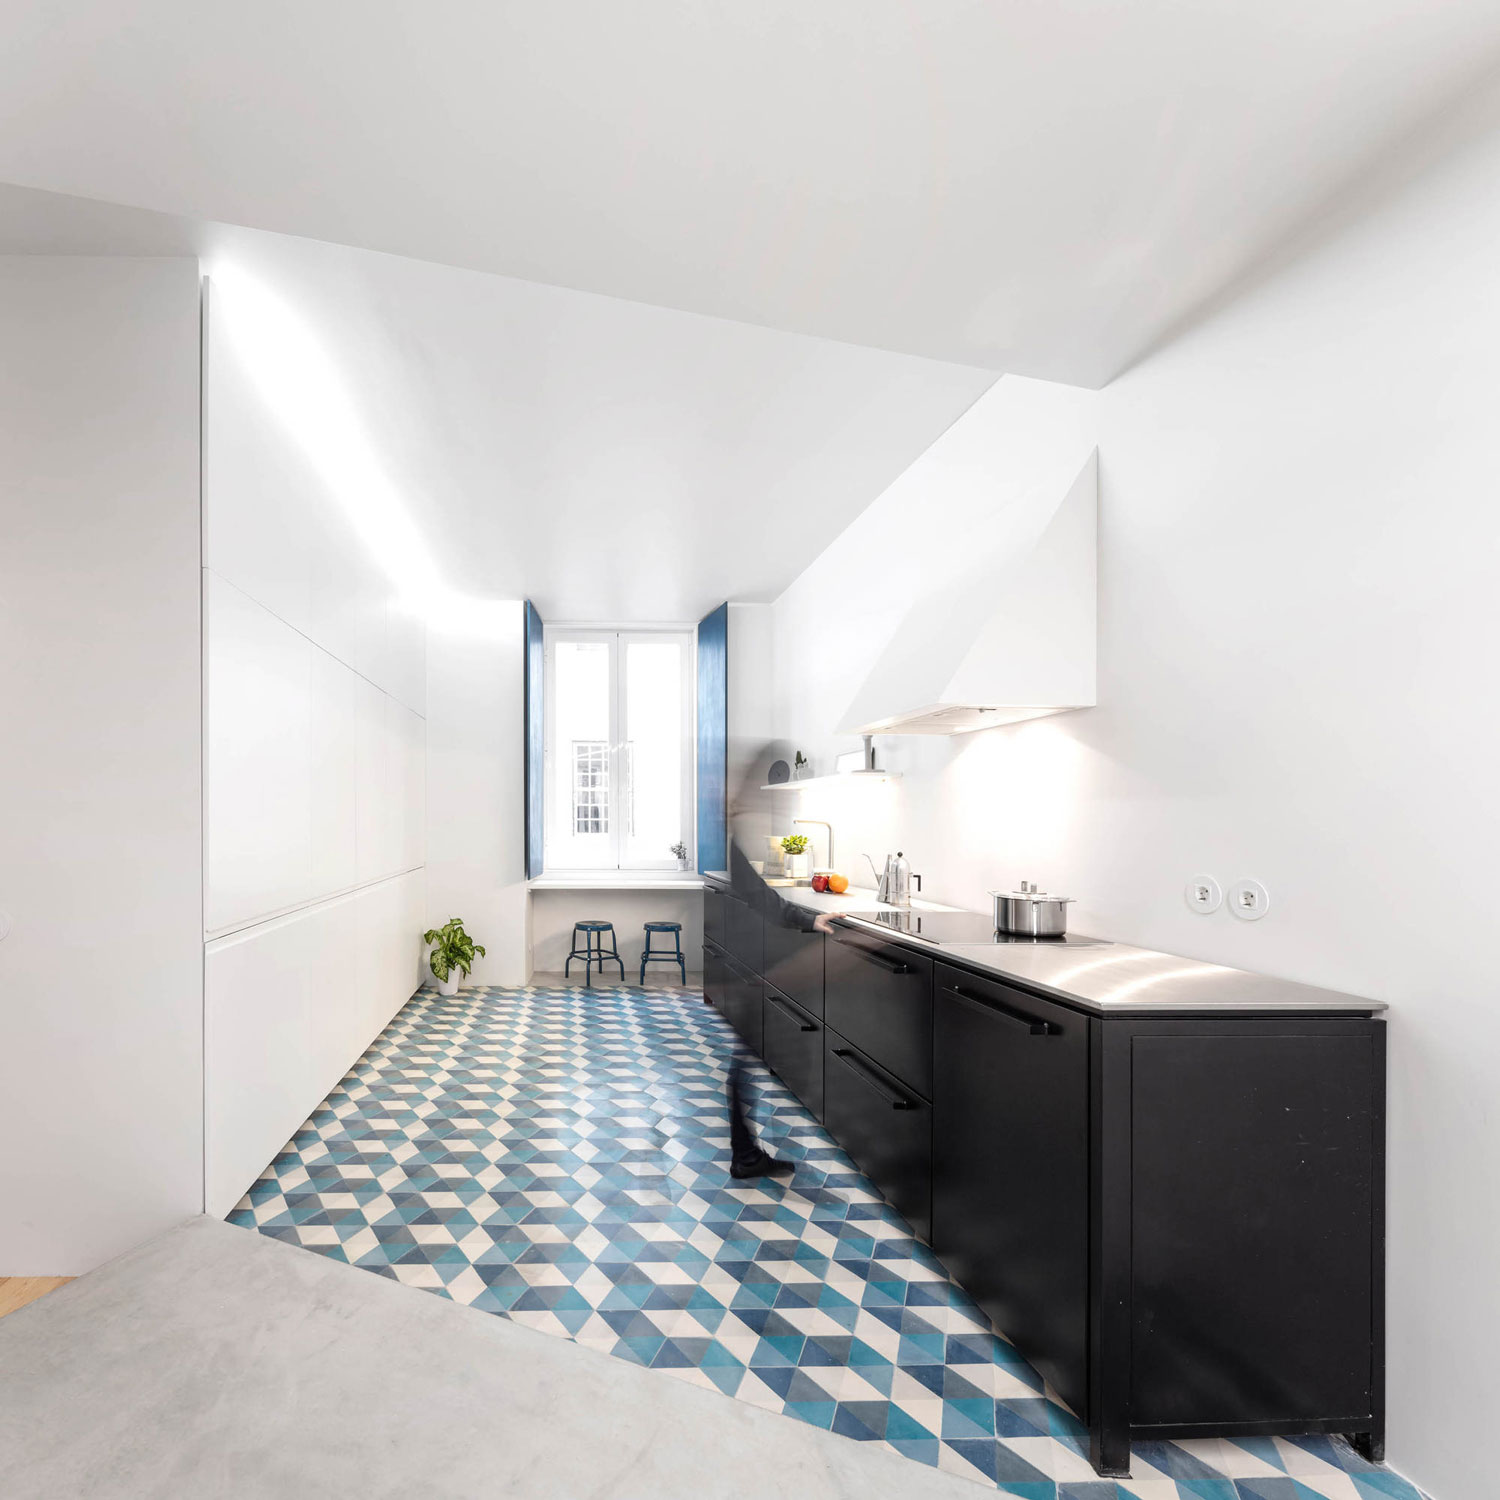 Chiado-Apartment-Lisbon-by-Fala-Atelier-Yellowtrace-21